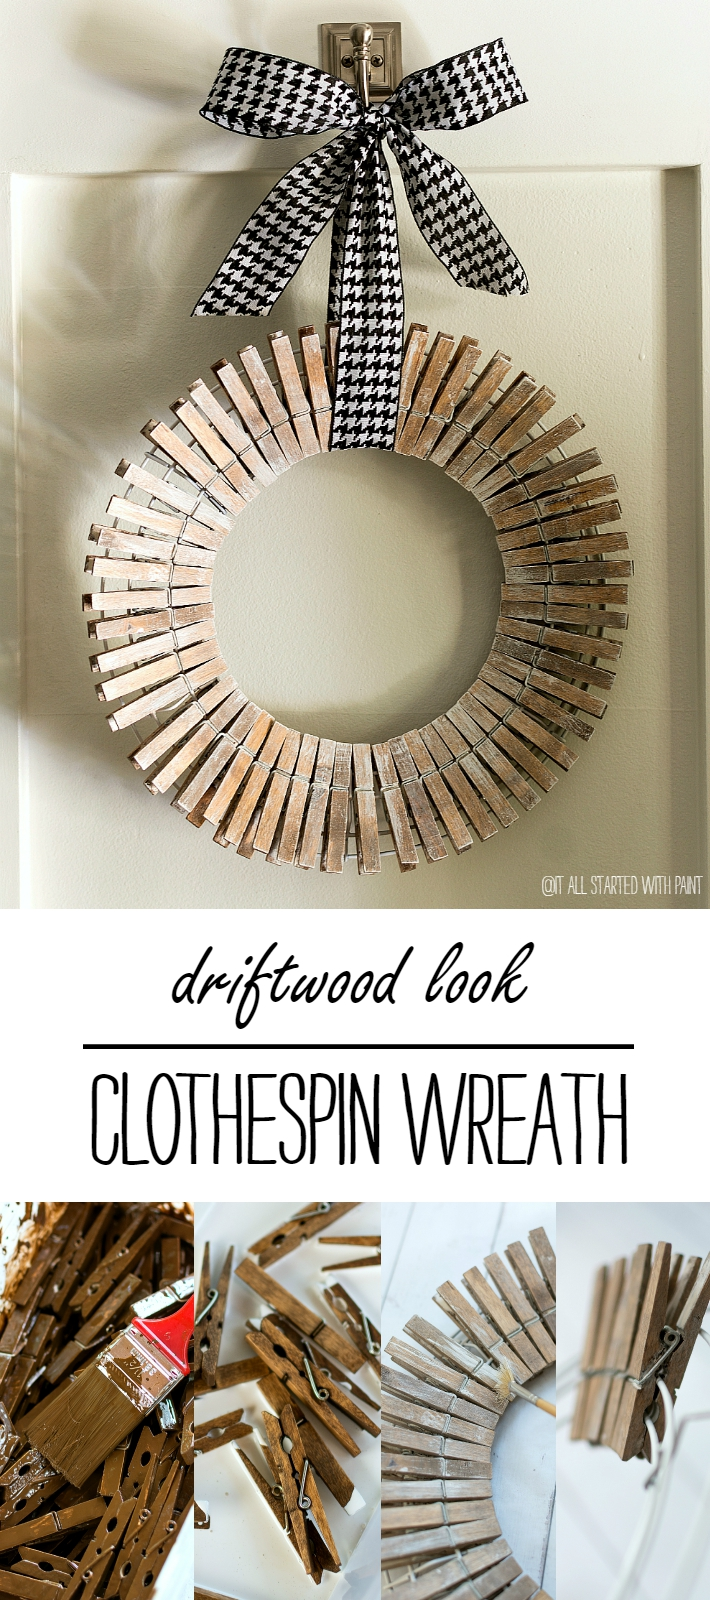 Clothespin Wreath: Painted with Driftwood Look